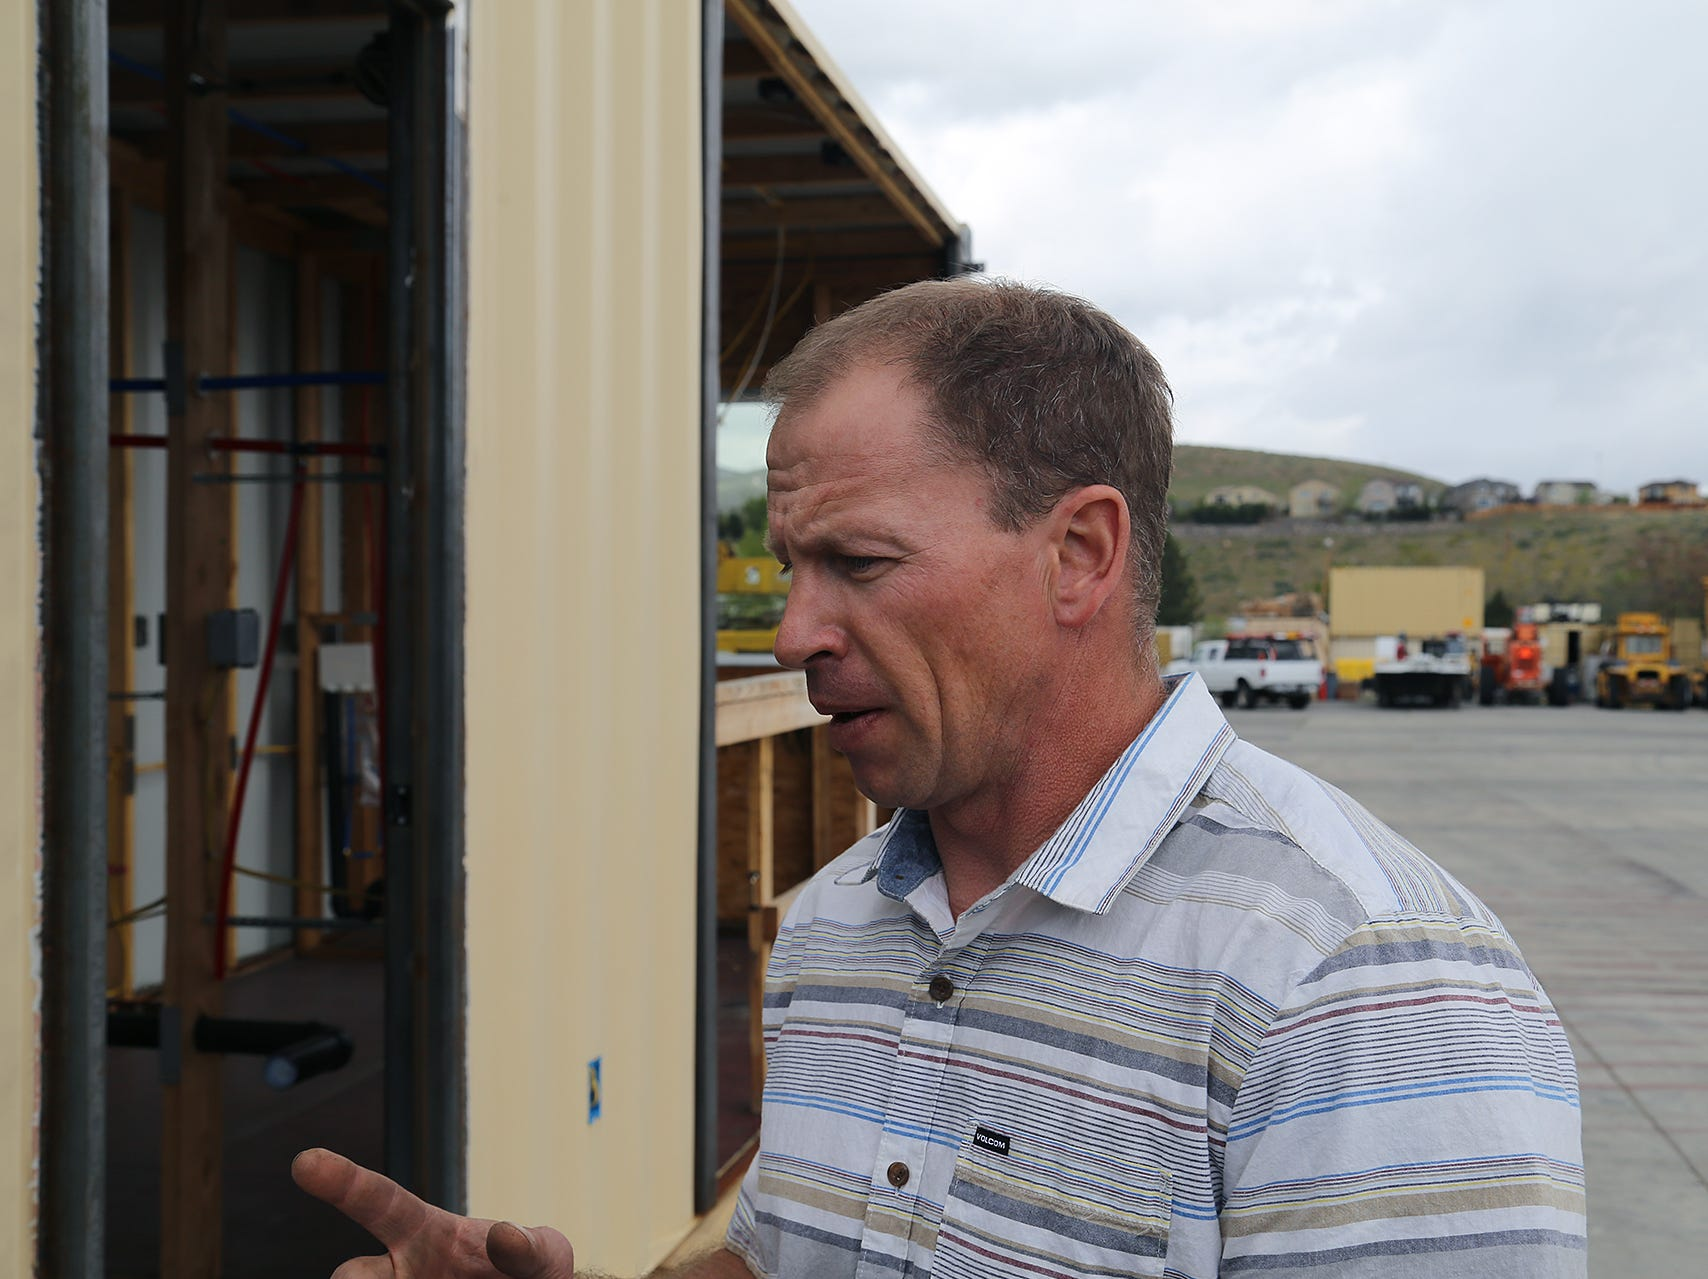 Chad Giguiere, owner of Twisted Metal in Reno, shows off his concept for shipping container-based housing on April 30, 2019.